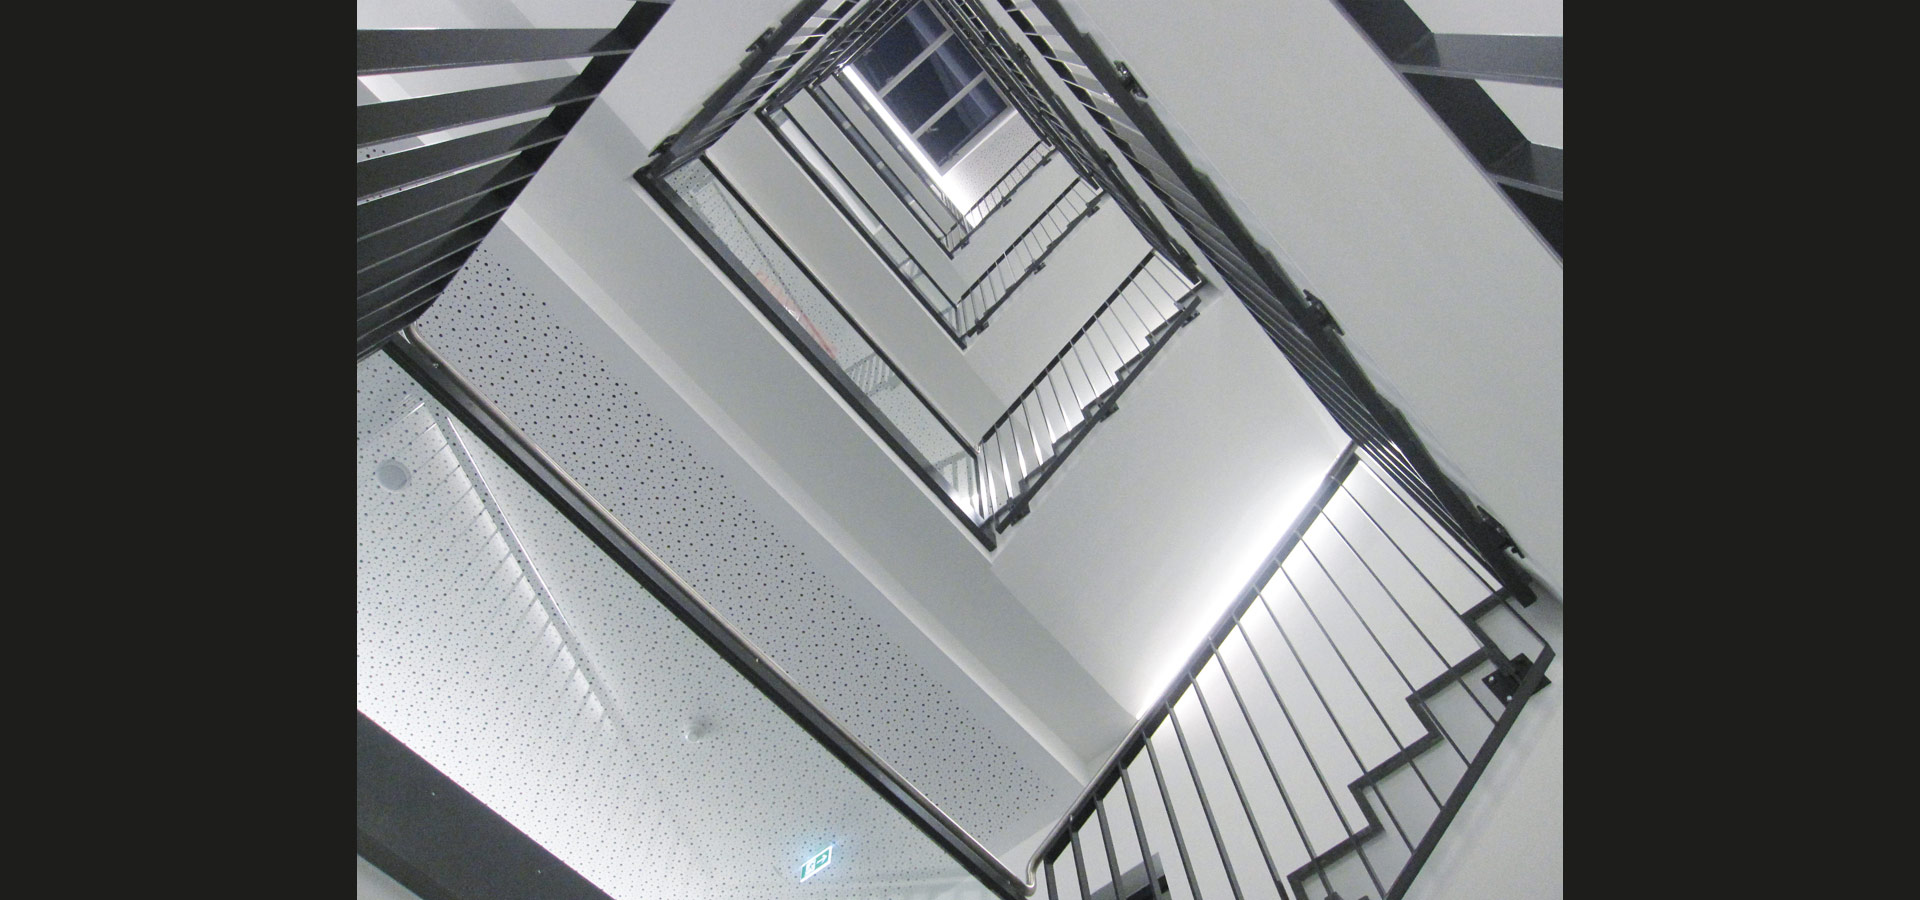 Luxsystem staircase lighting for hospitals light strip 20.2